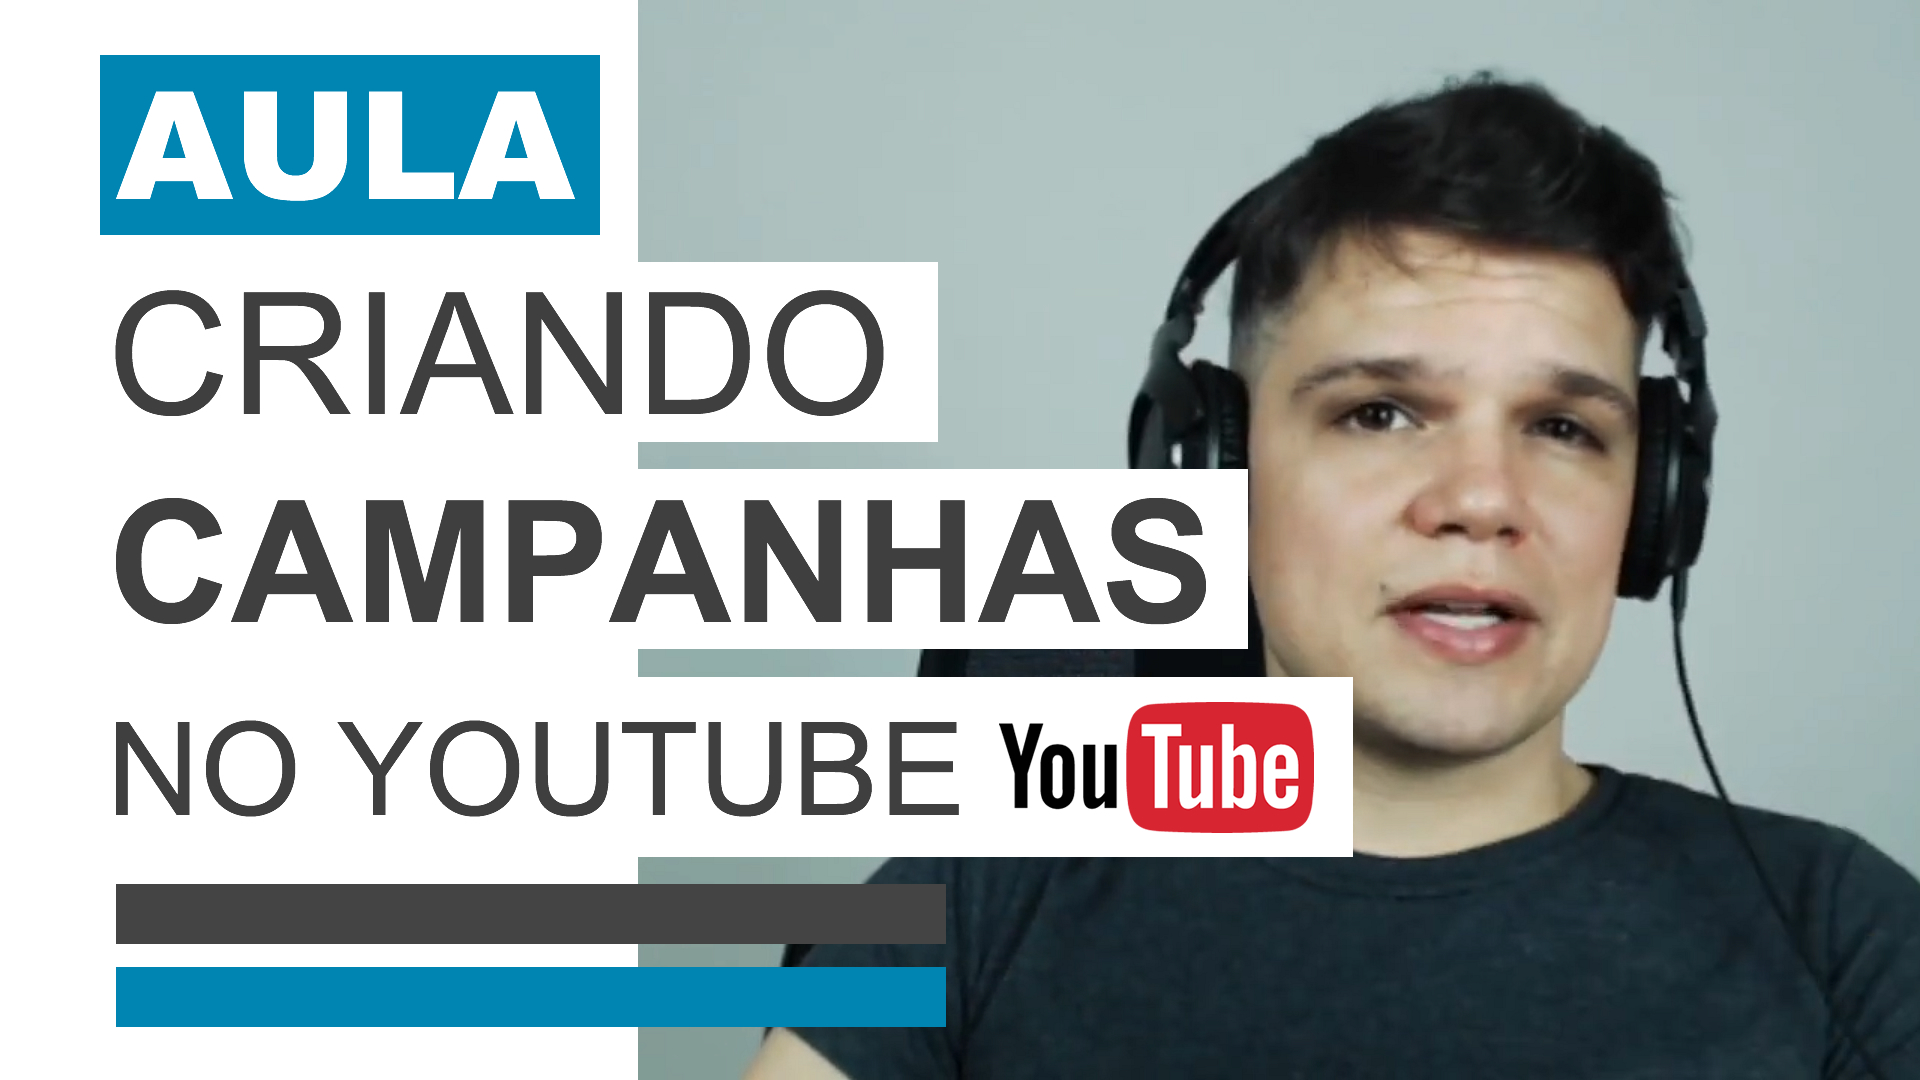 [Google Ads #1 - AULA] Criando campanha no Youtube